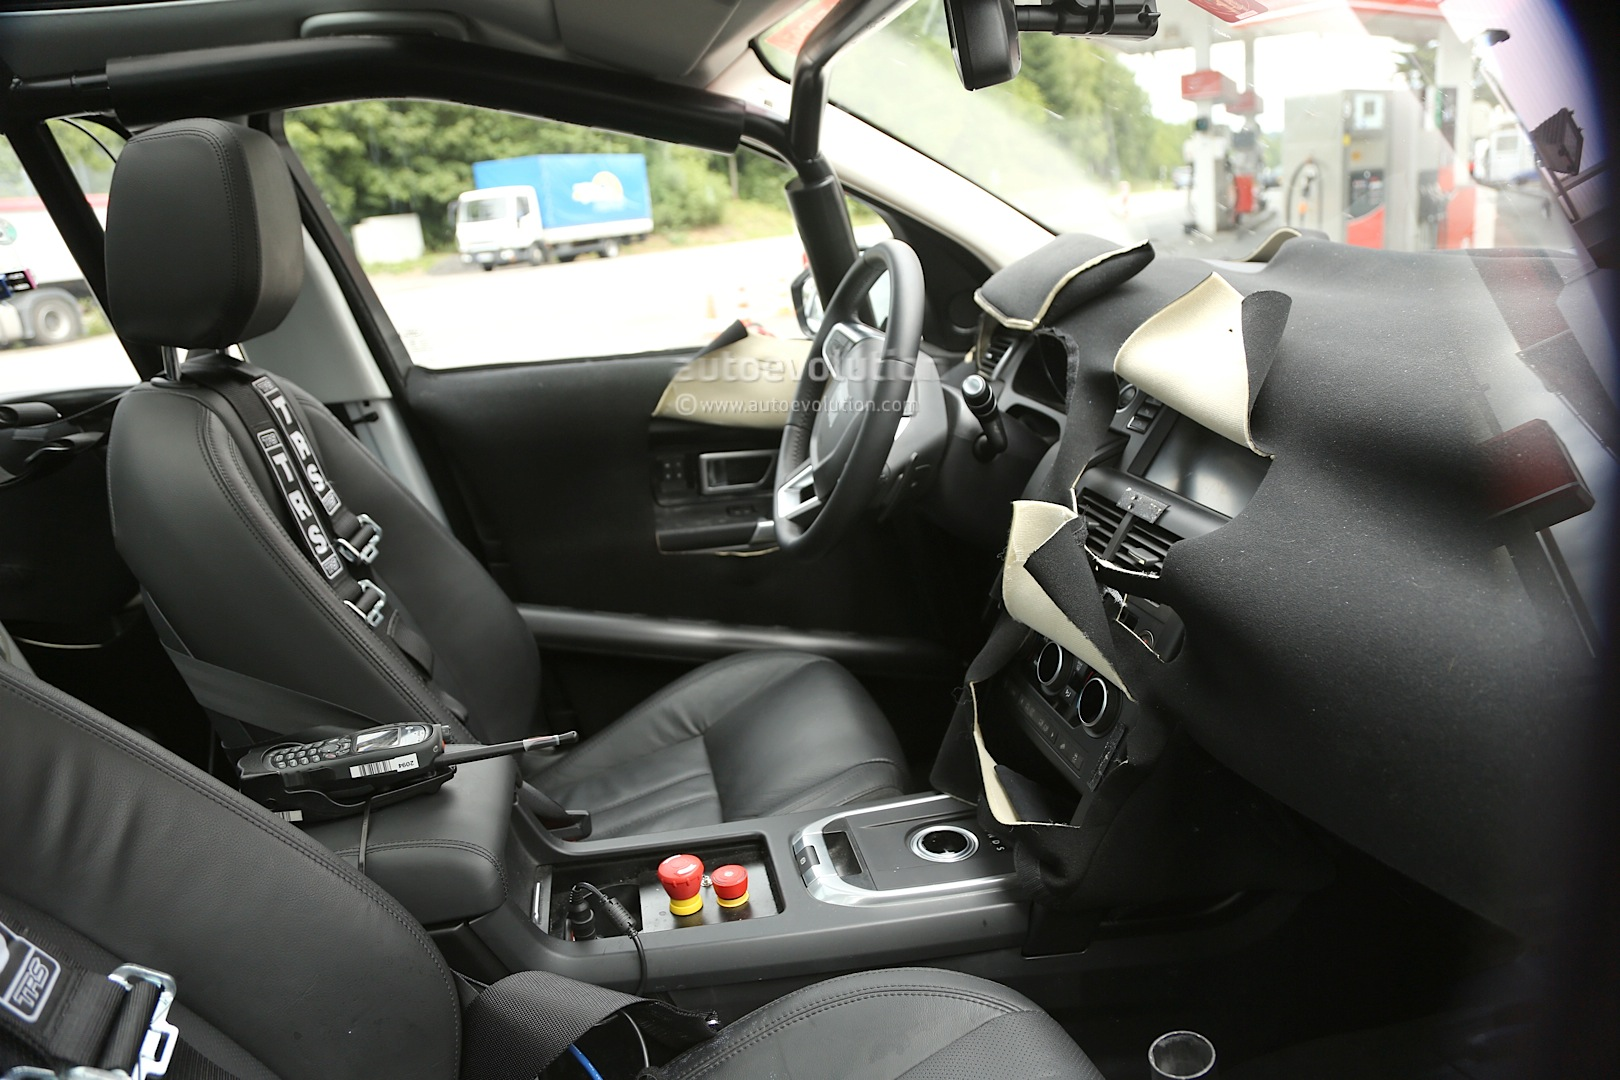 fantastic-design-of-the-black-seats-ideas-with-black-dash-ad-black-steering-wheels-as-car-interior-ideas-of-the-land-rover-discovery-sport-2015-interior-ideas